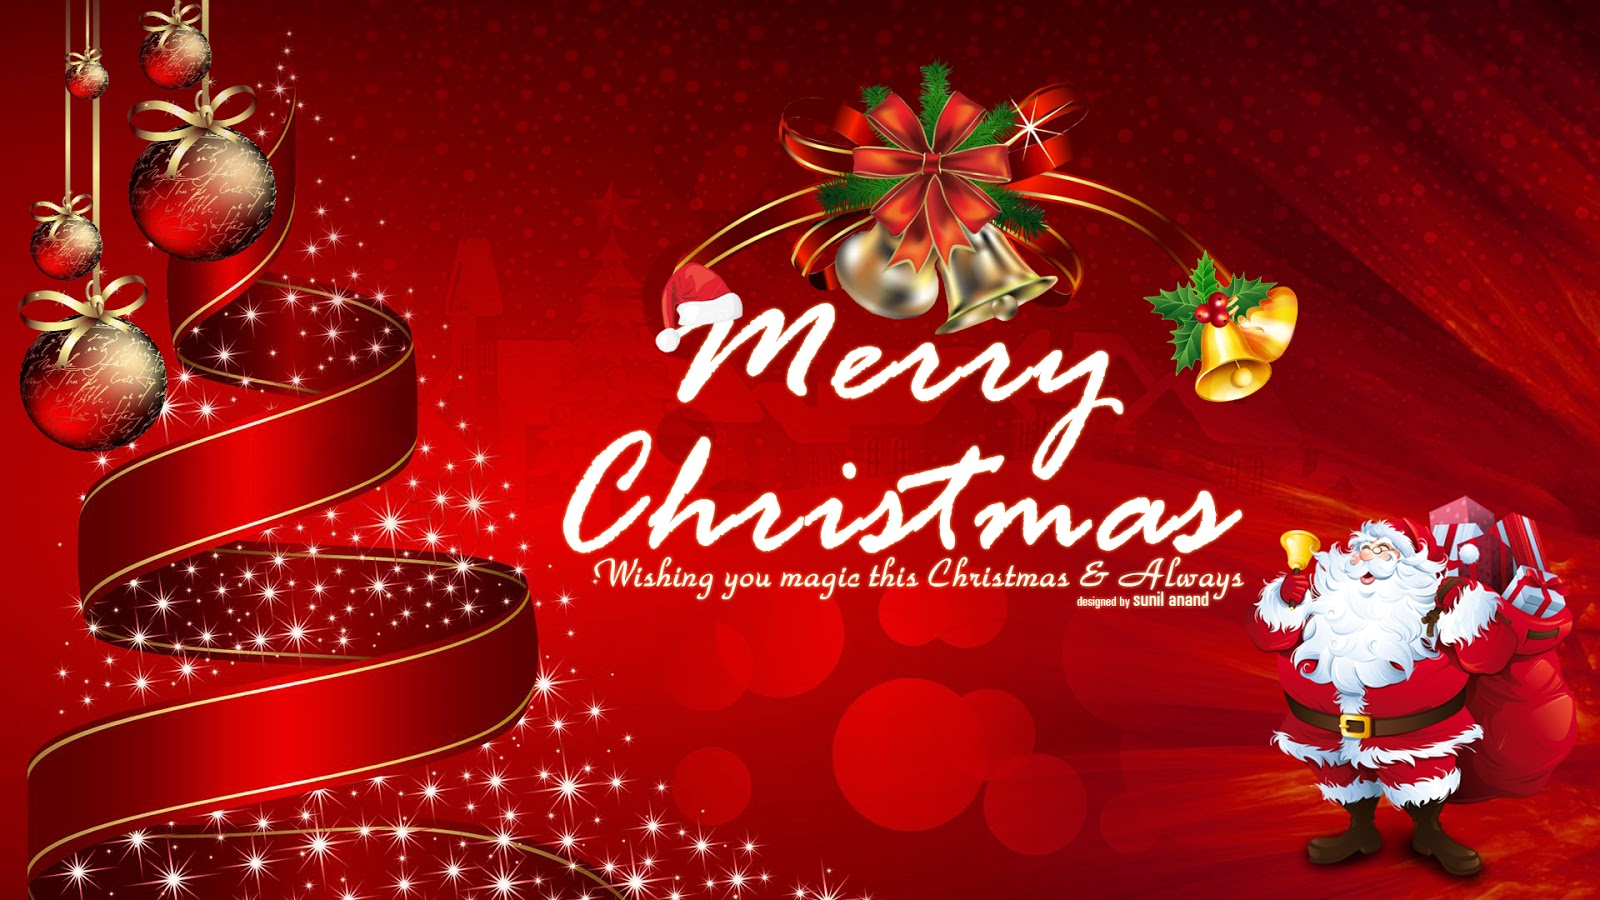 Merry Christmas Wallpaper By Sunil Anand Christmas Card